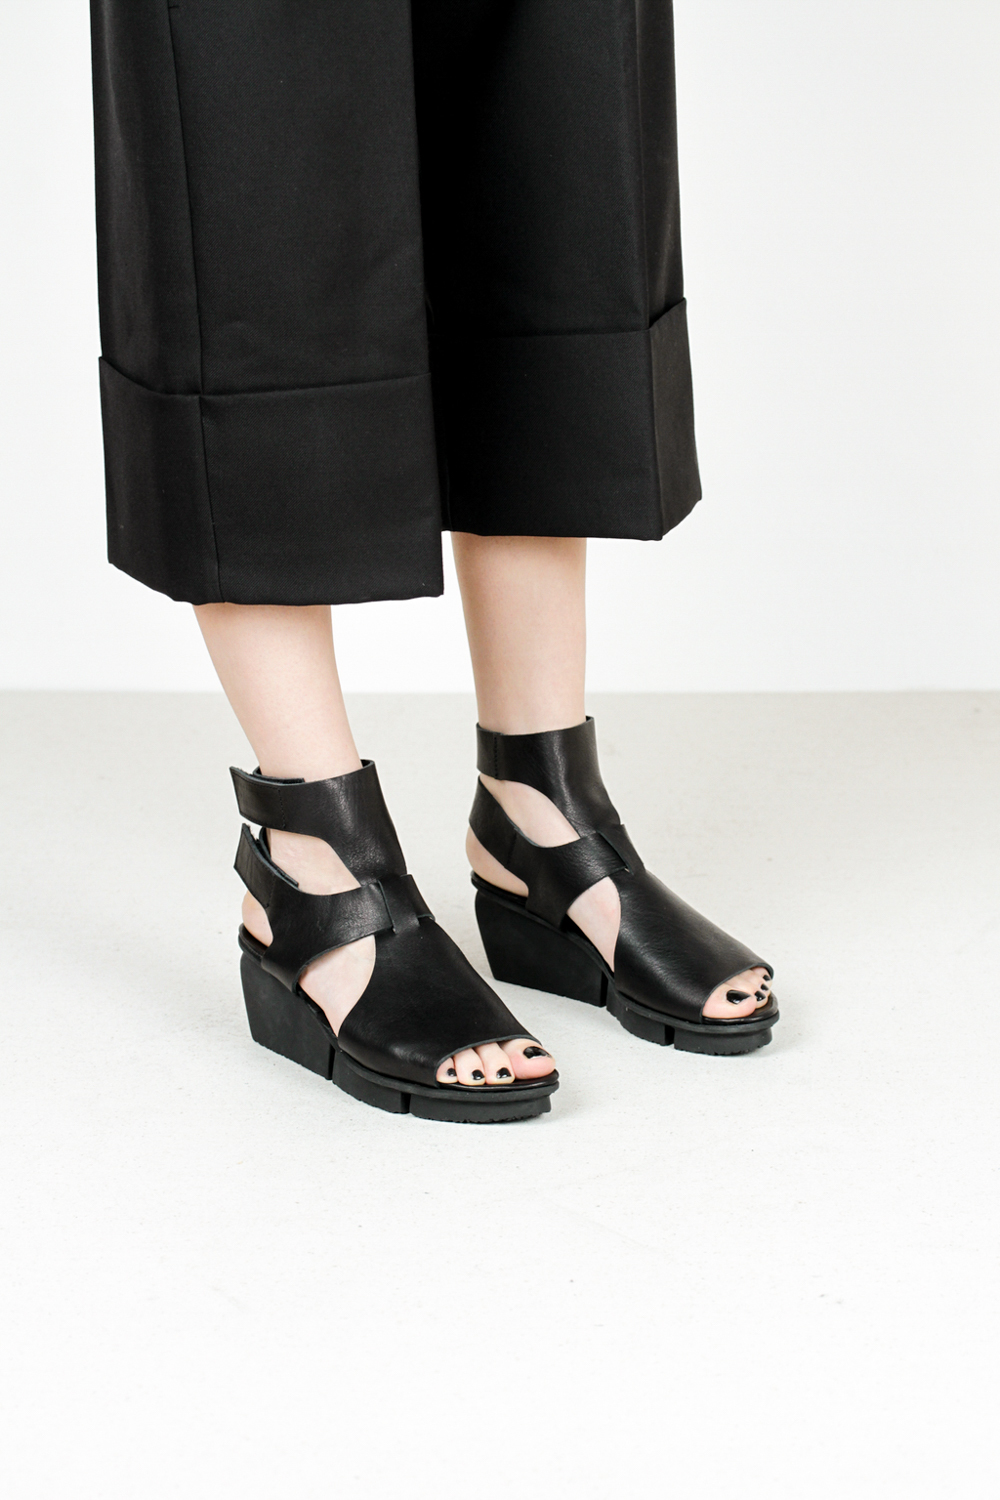 Trippen vista f waw blk leather sandals